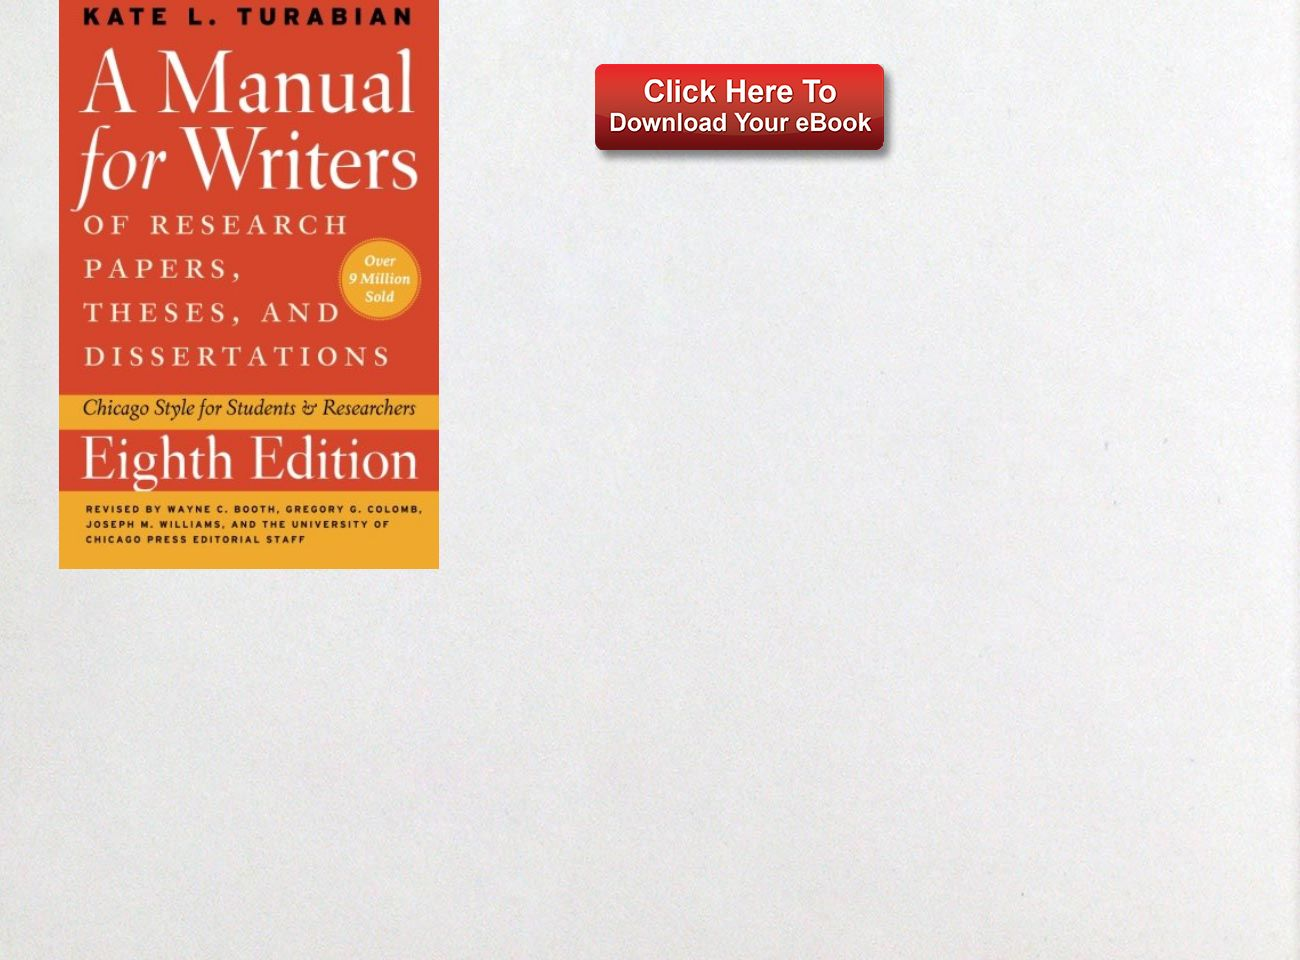 016 Source Manual For Writers Of Researchs Theses And Dissertations Eighth Edition Phenomenal A Research Papers Pdf Full